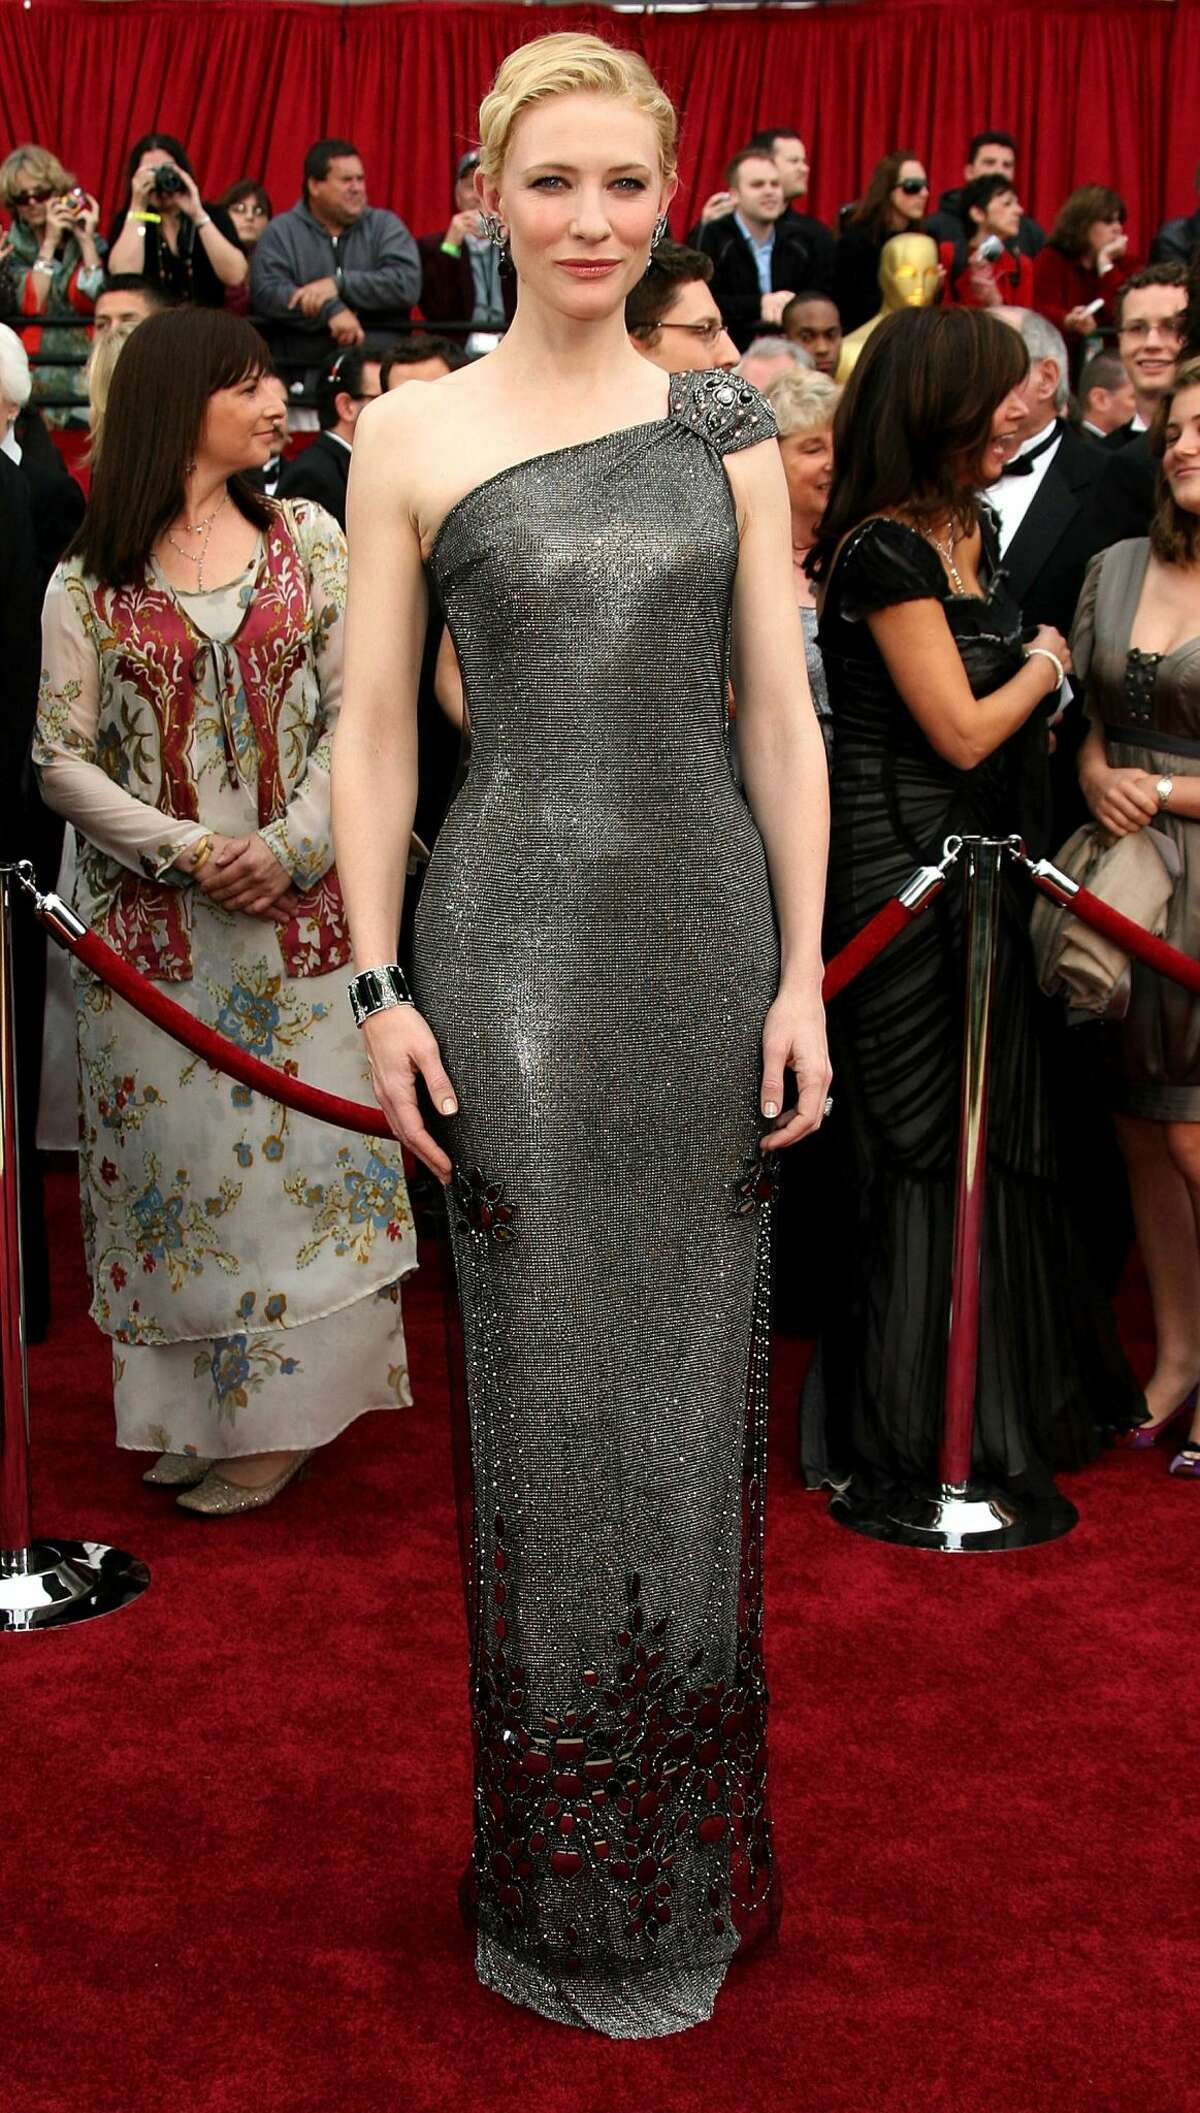 8. ARMANI PRIVÉ: $200,000 Actress Cate Blanchett attends the 79th Annual Academy Award in 2007 and made a splash with this chainmail-esque dress that emulated